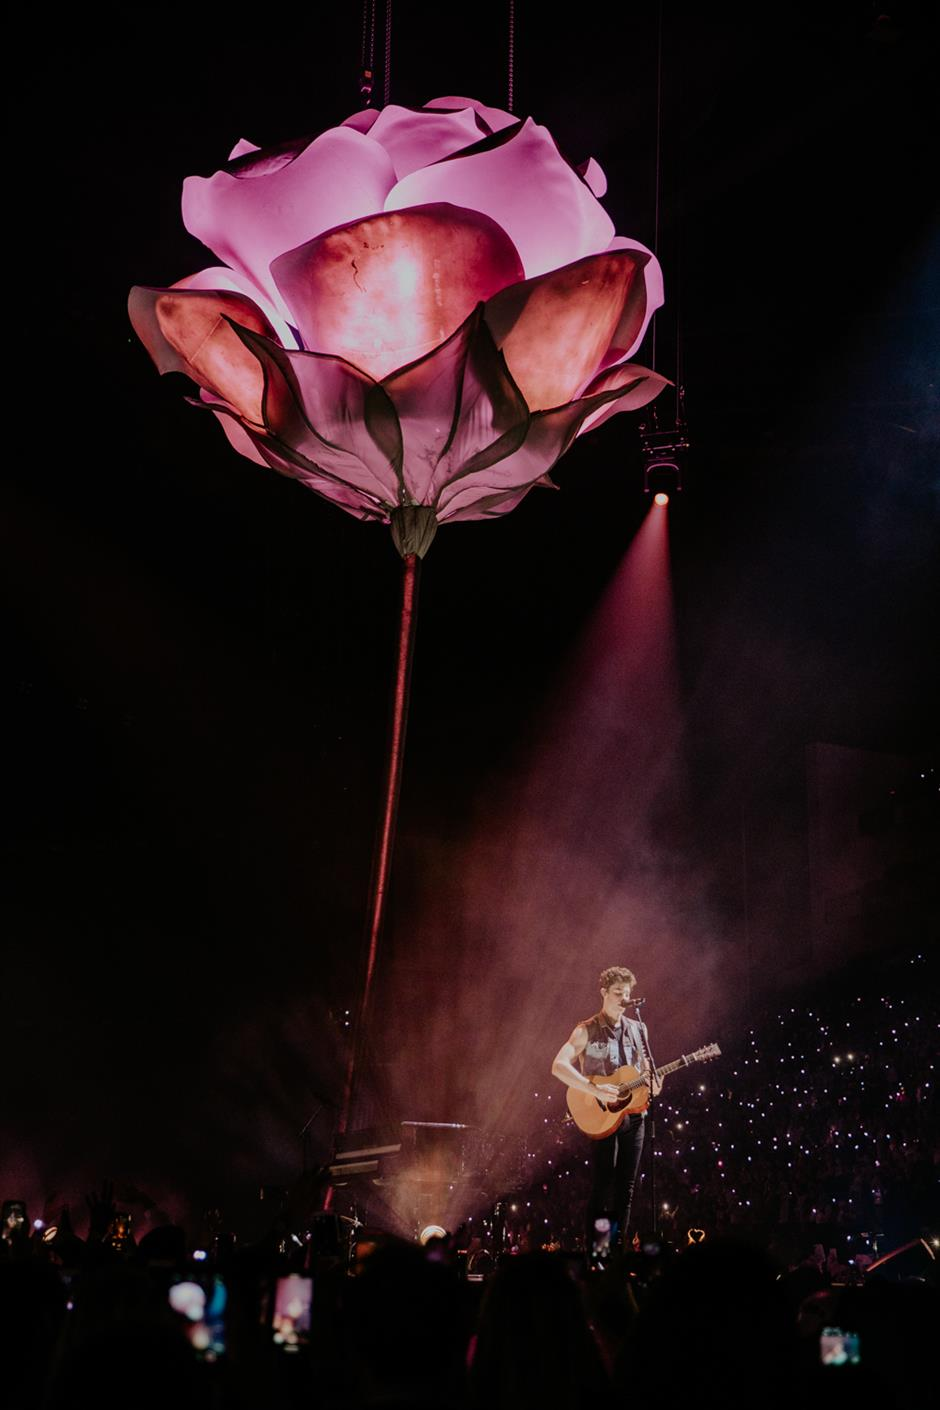 Shawn Mendes to make China debut in Shanghai